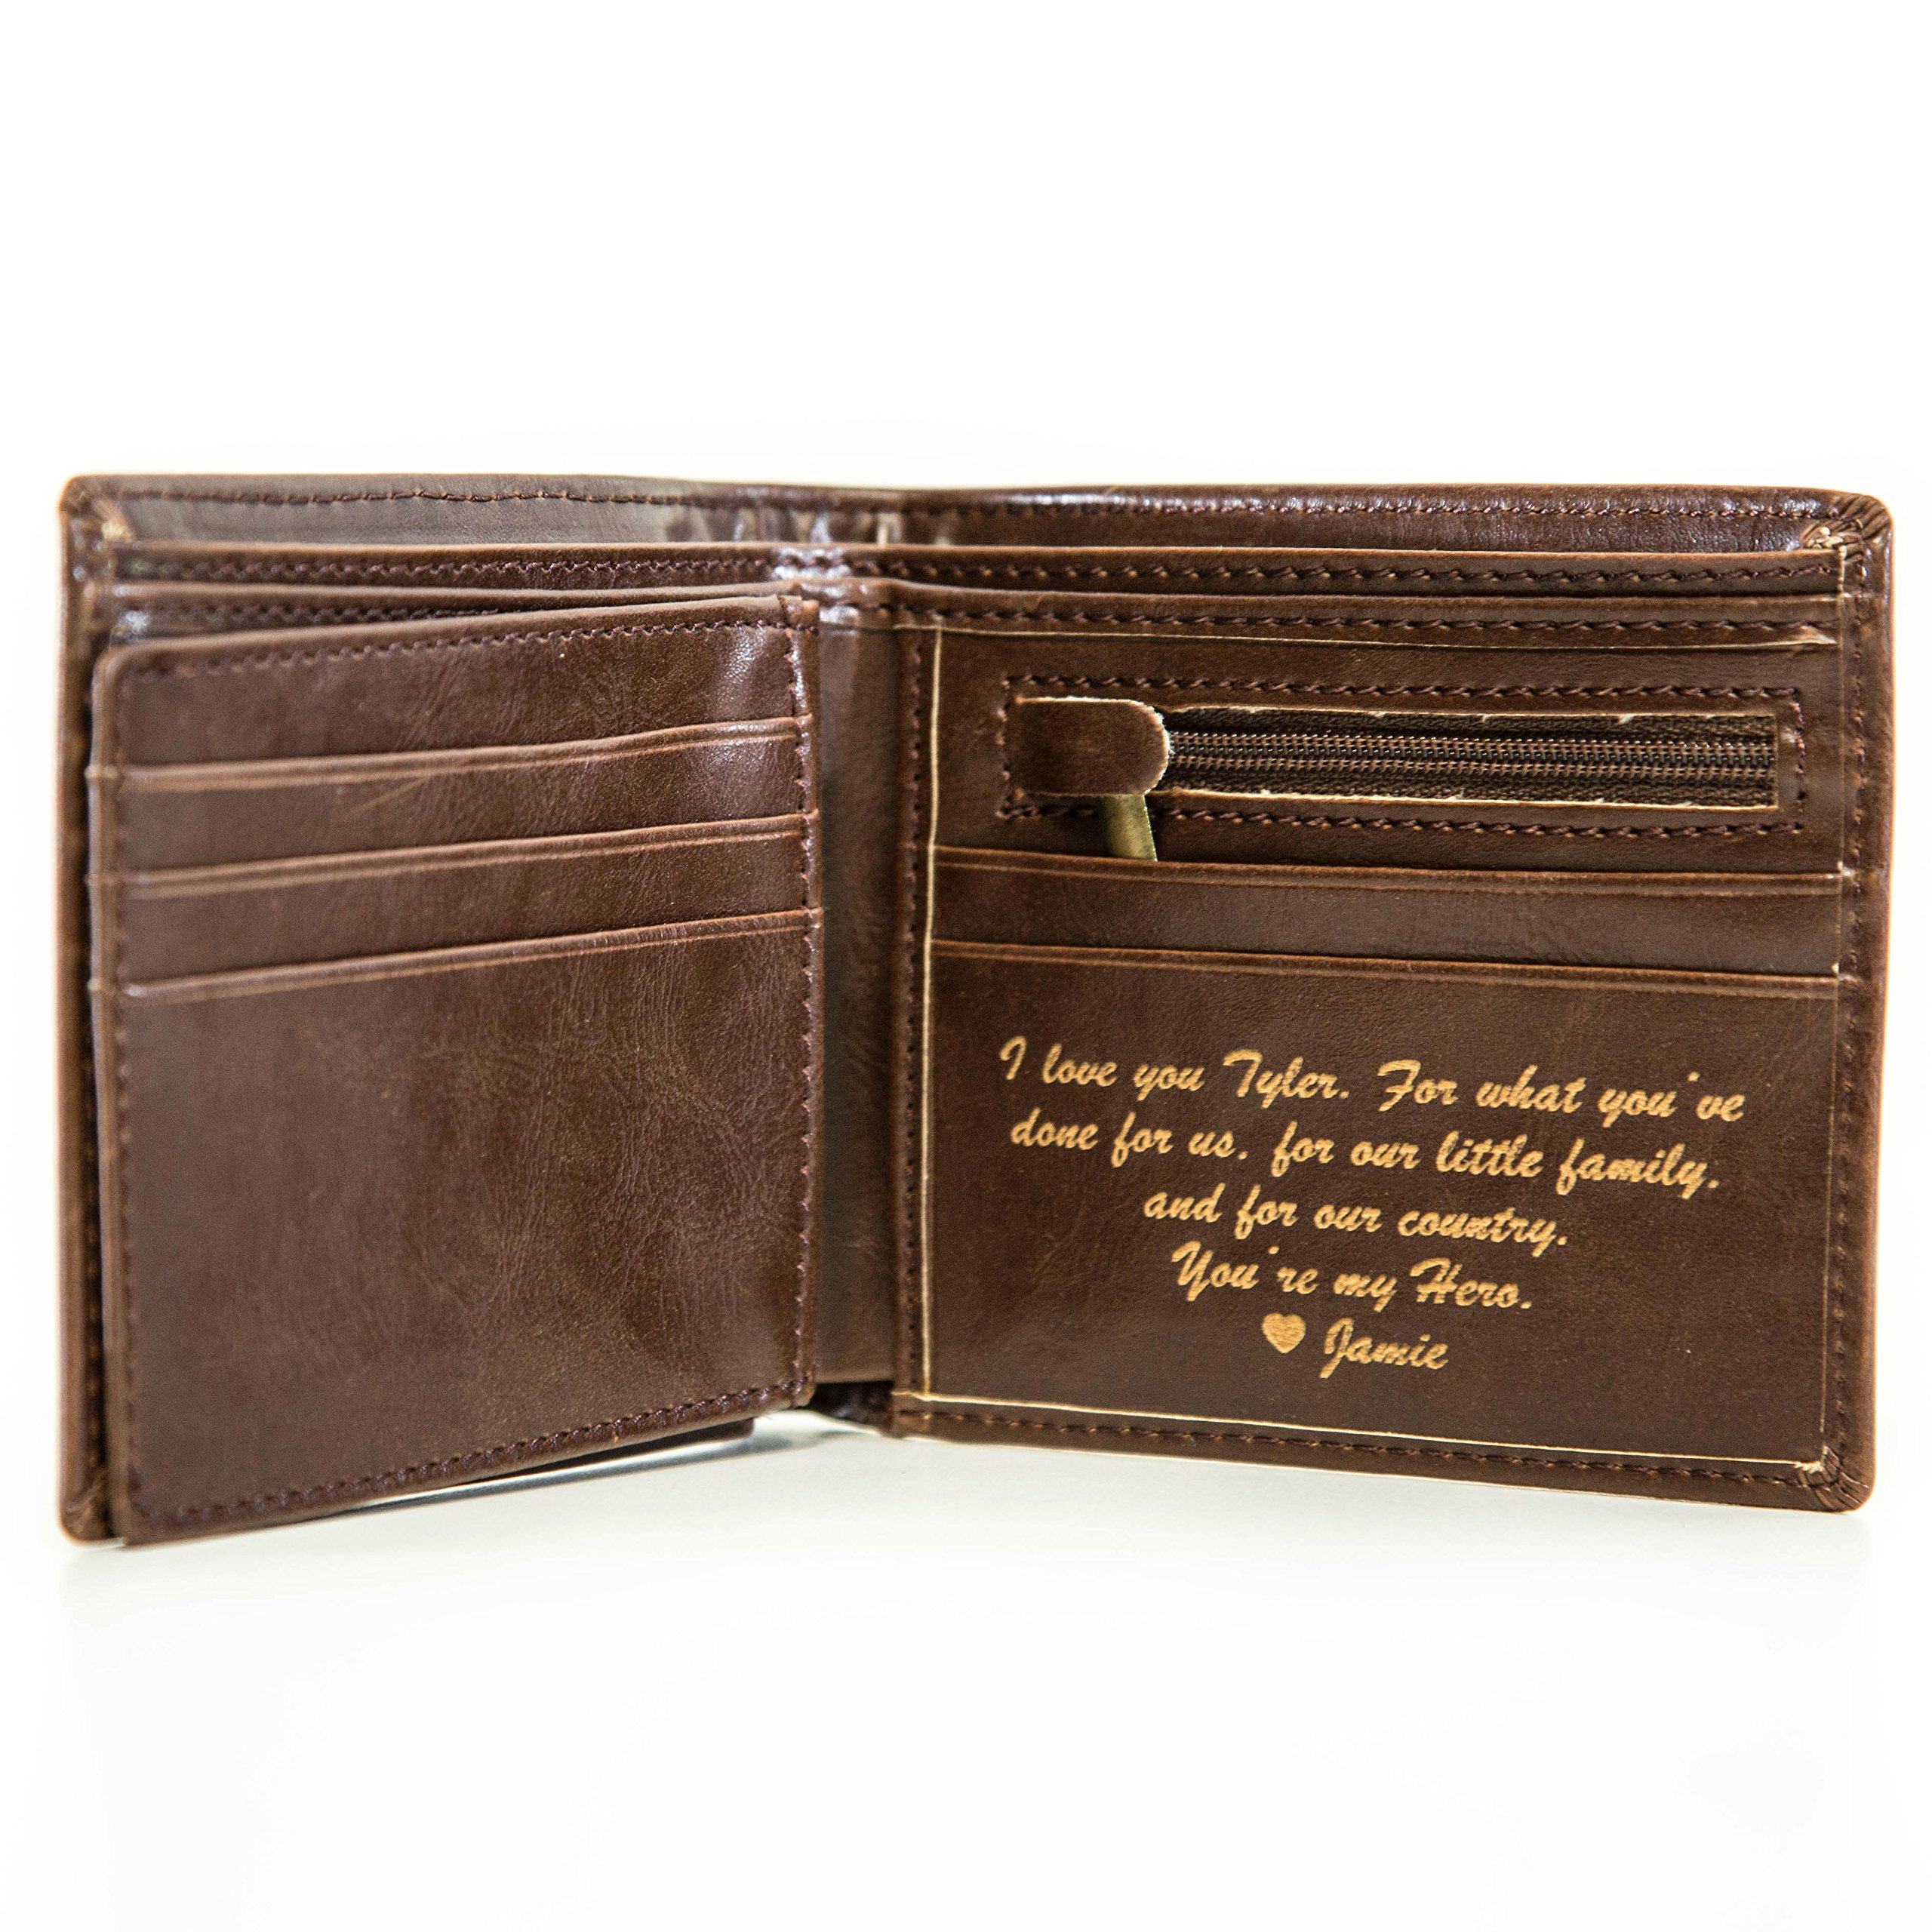 Personalized Mens Wallet - Leather Wallet, The Perfect Mens Gift, Boyfriend Gift, Father's Day Gift or Groomsmen Gift - Personalized Gifts for Men: a Bifold ...